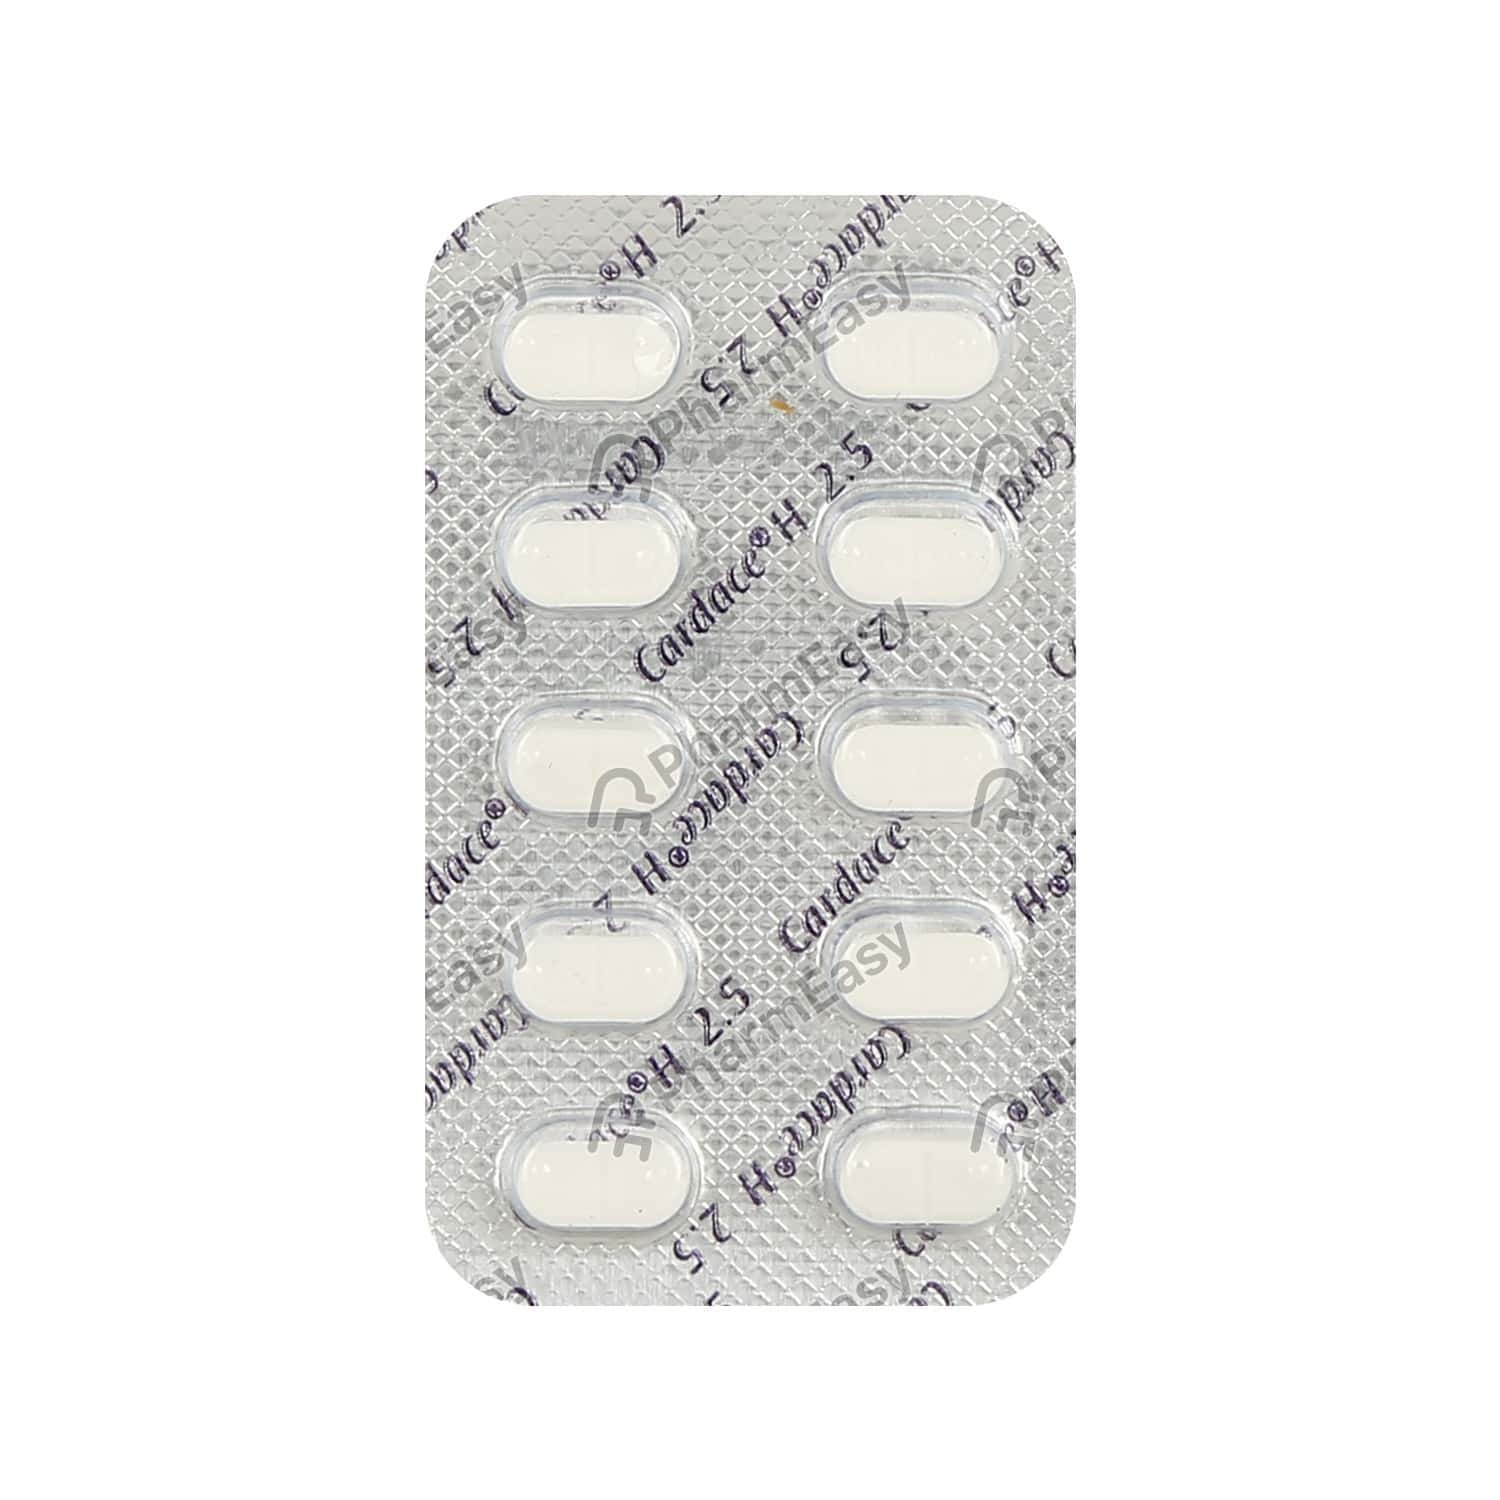 Cardace H 2.5mg Strip Of 10 Tablets